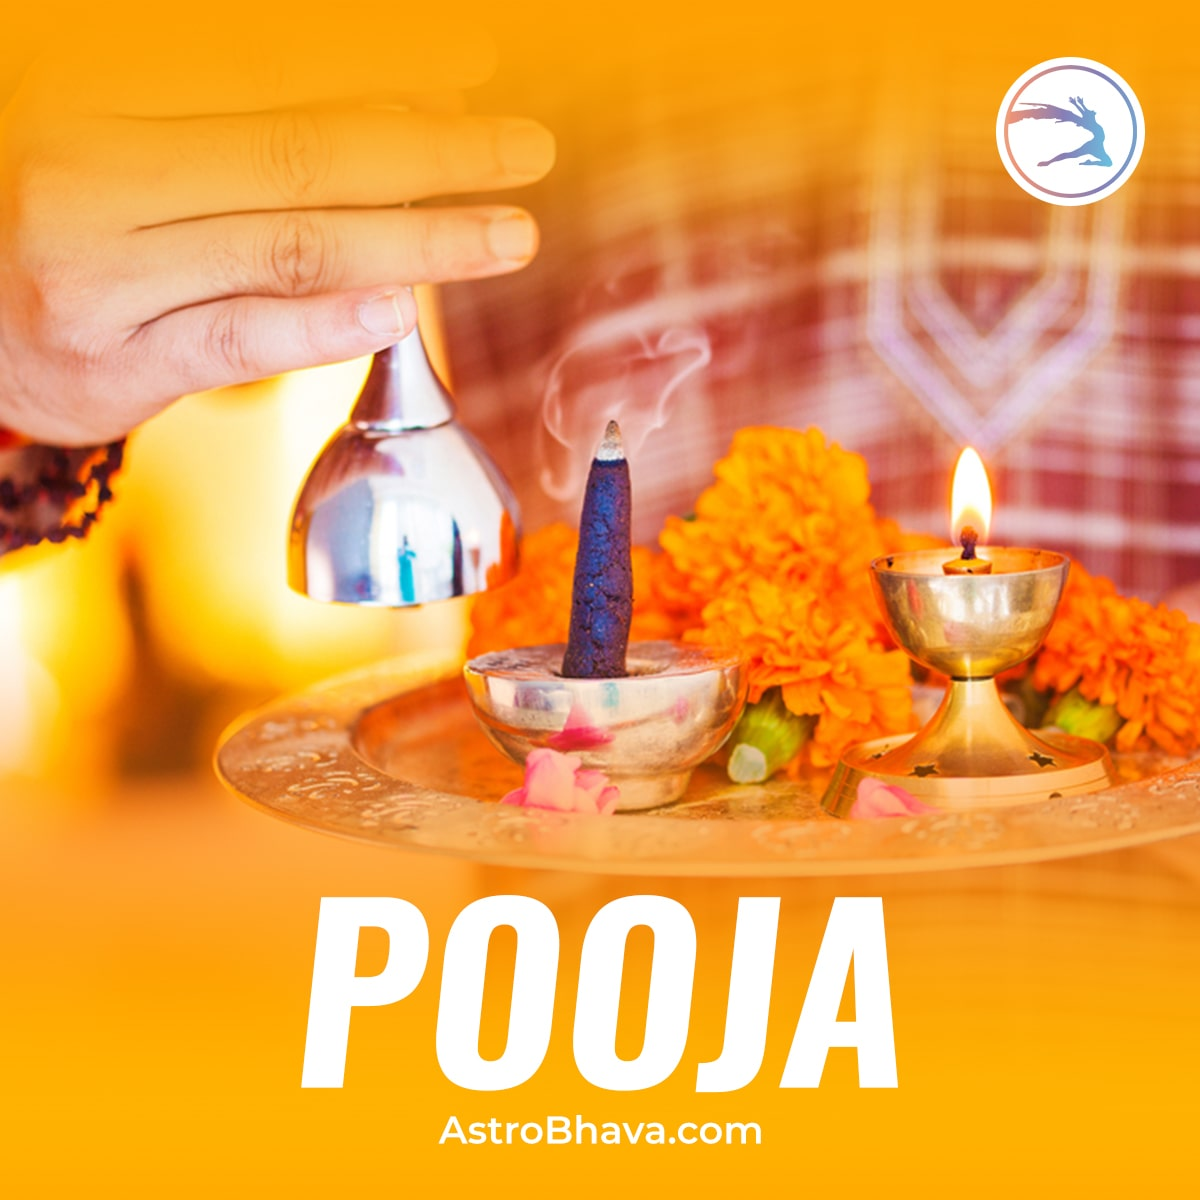 Online Pooja Services From Astrobhava To Solve All Life Issues